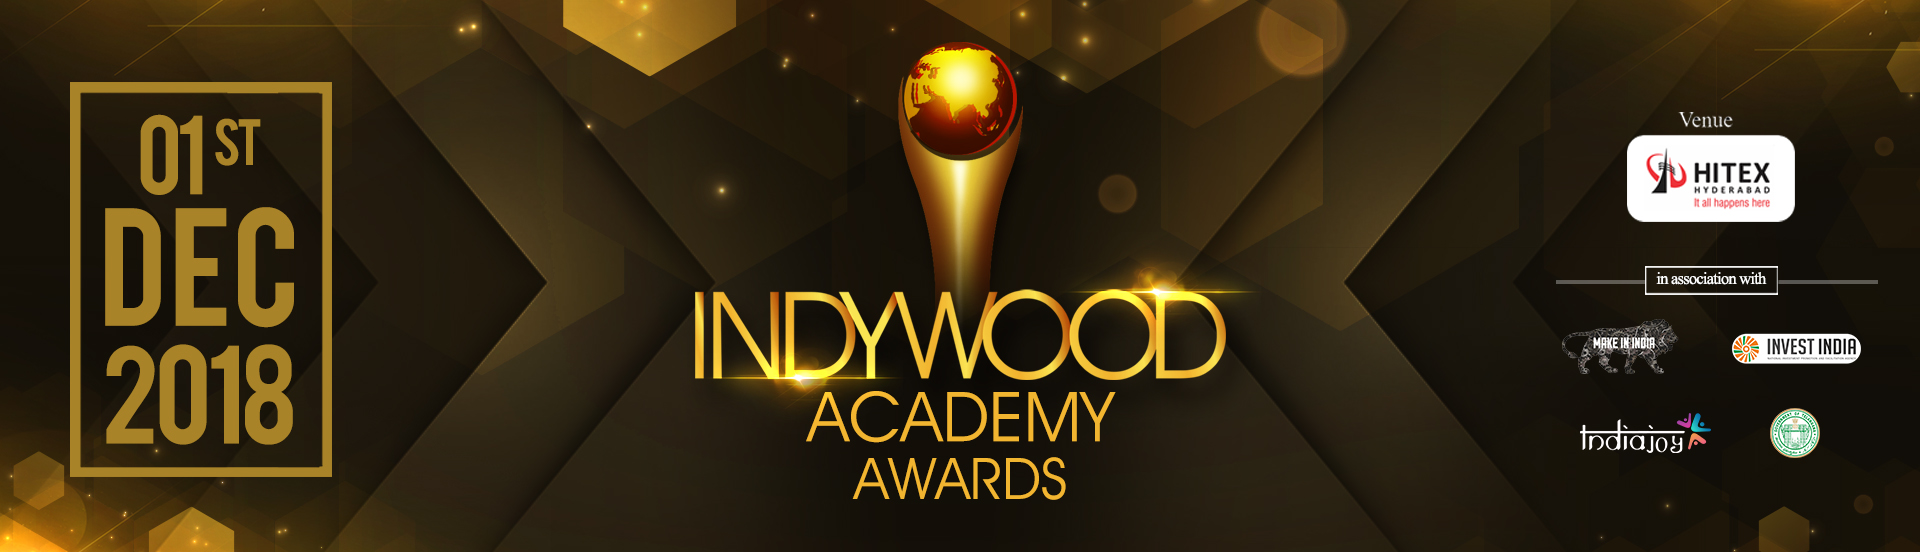 Indywood Academy Awards